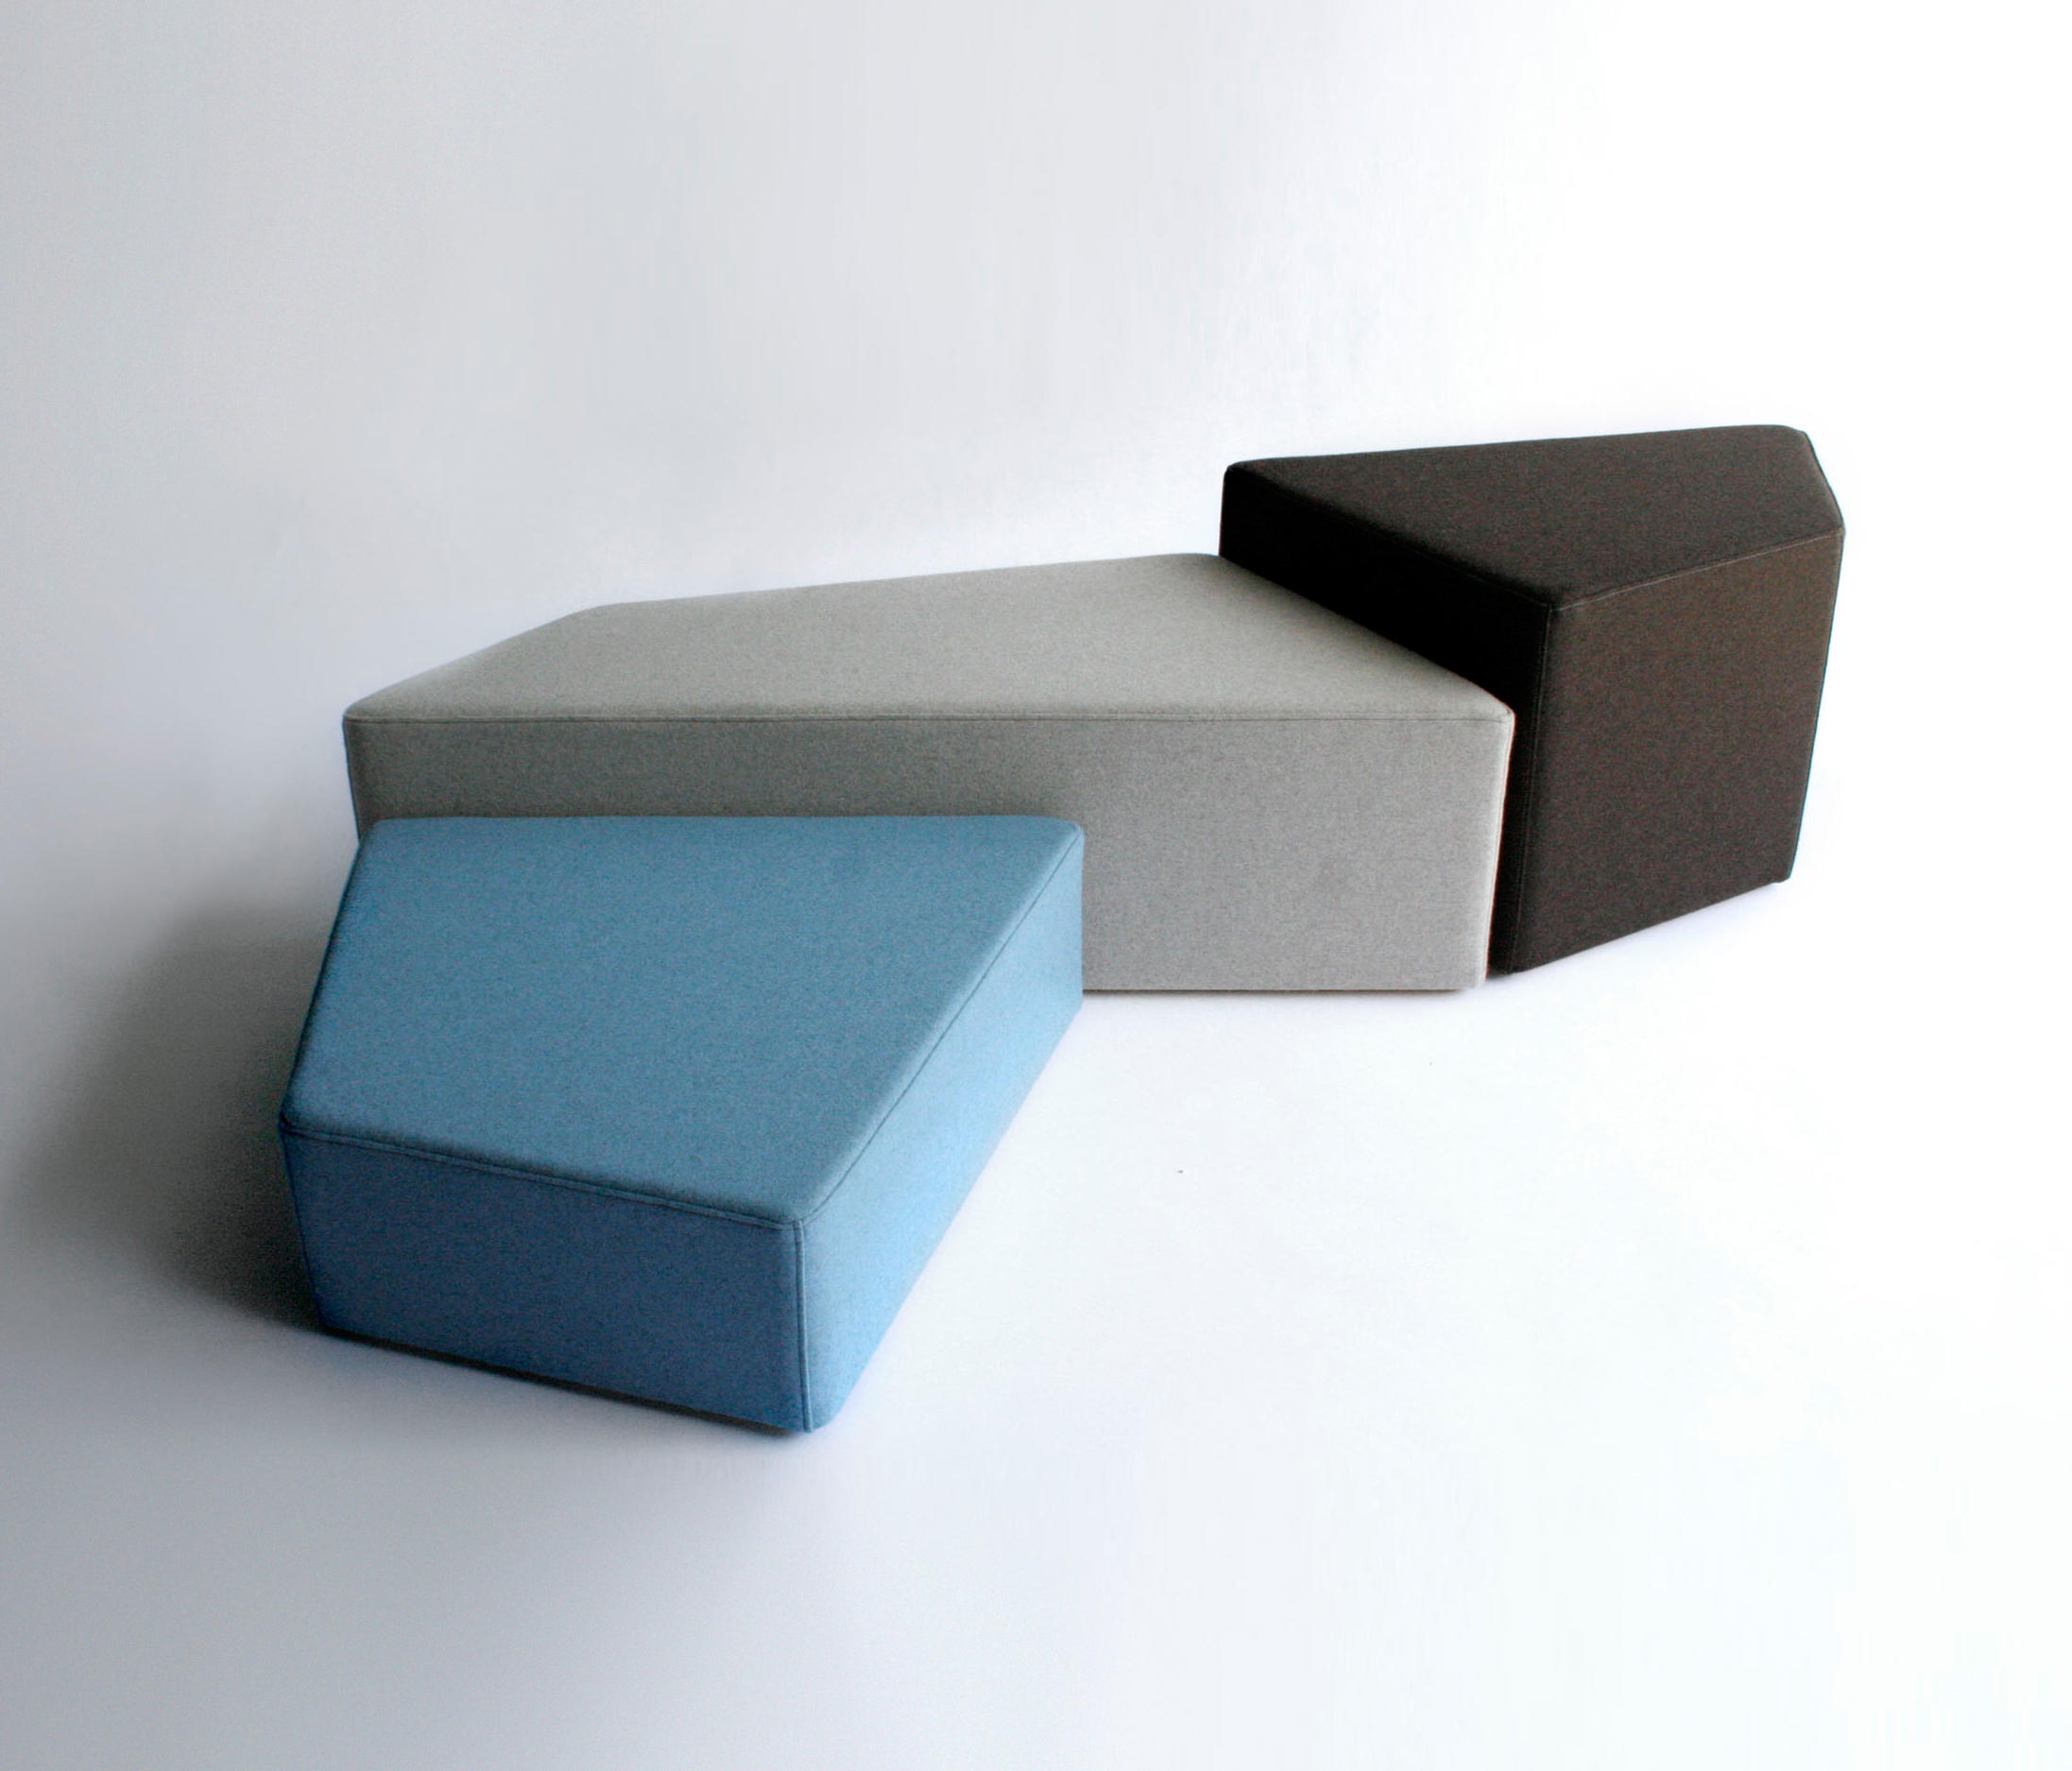 Pangaea Modular Seating Elements From Phase Design